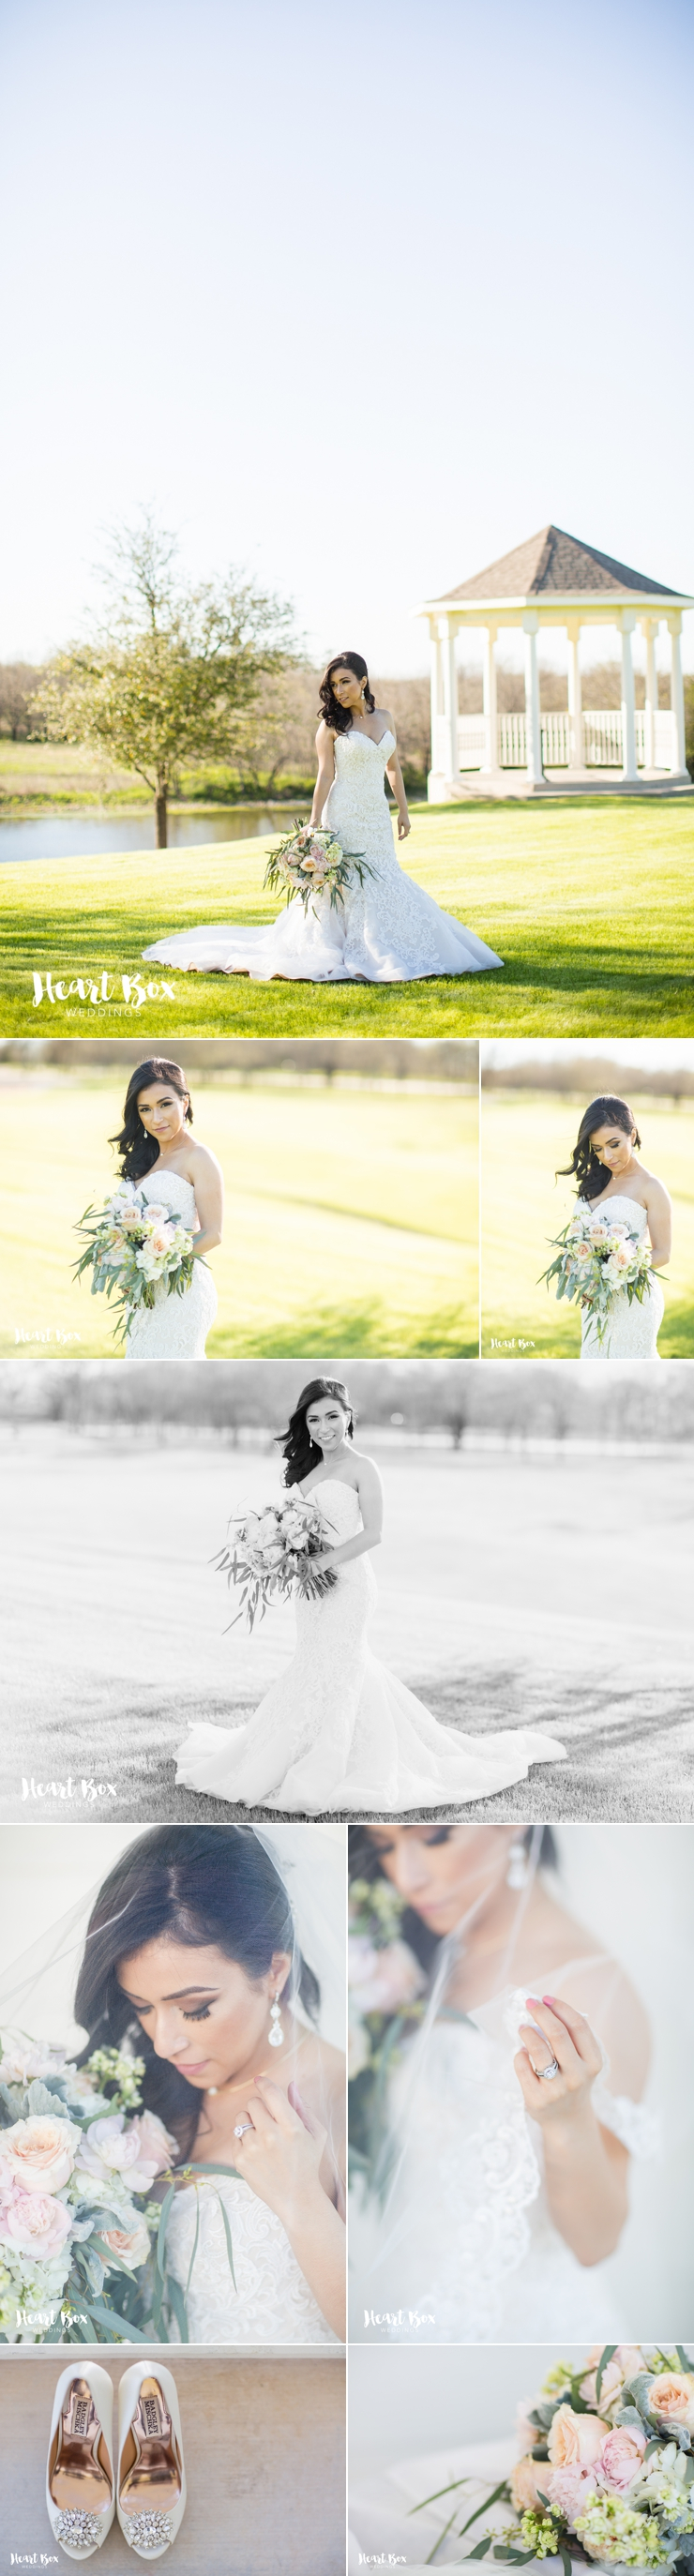 Stephanie Feliciano Bridal Blog Collages 6.jpg